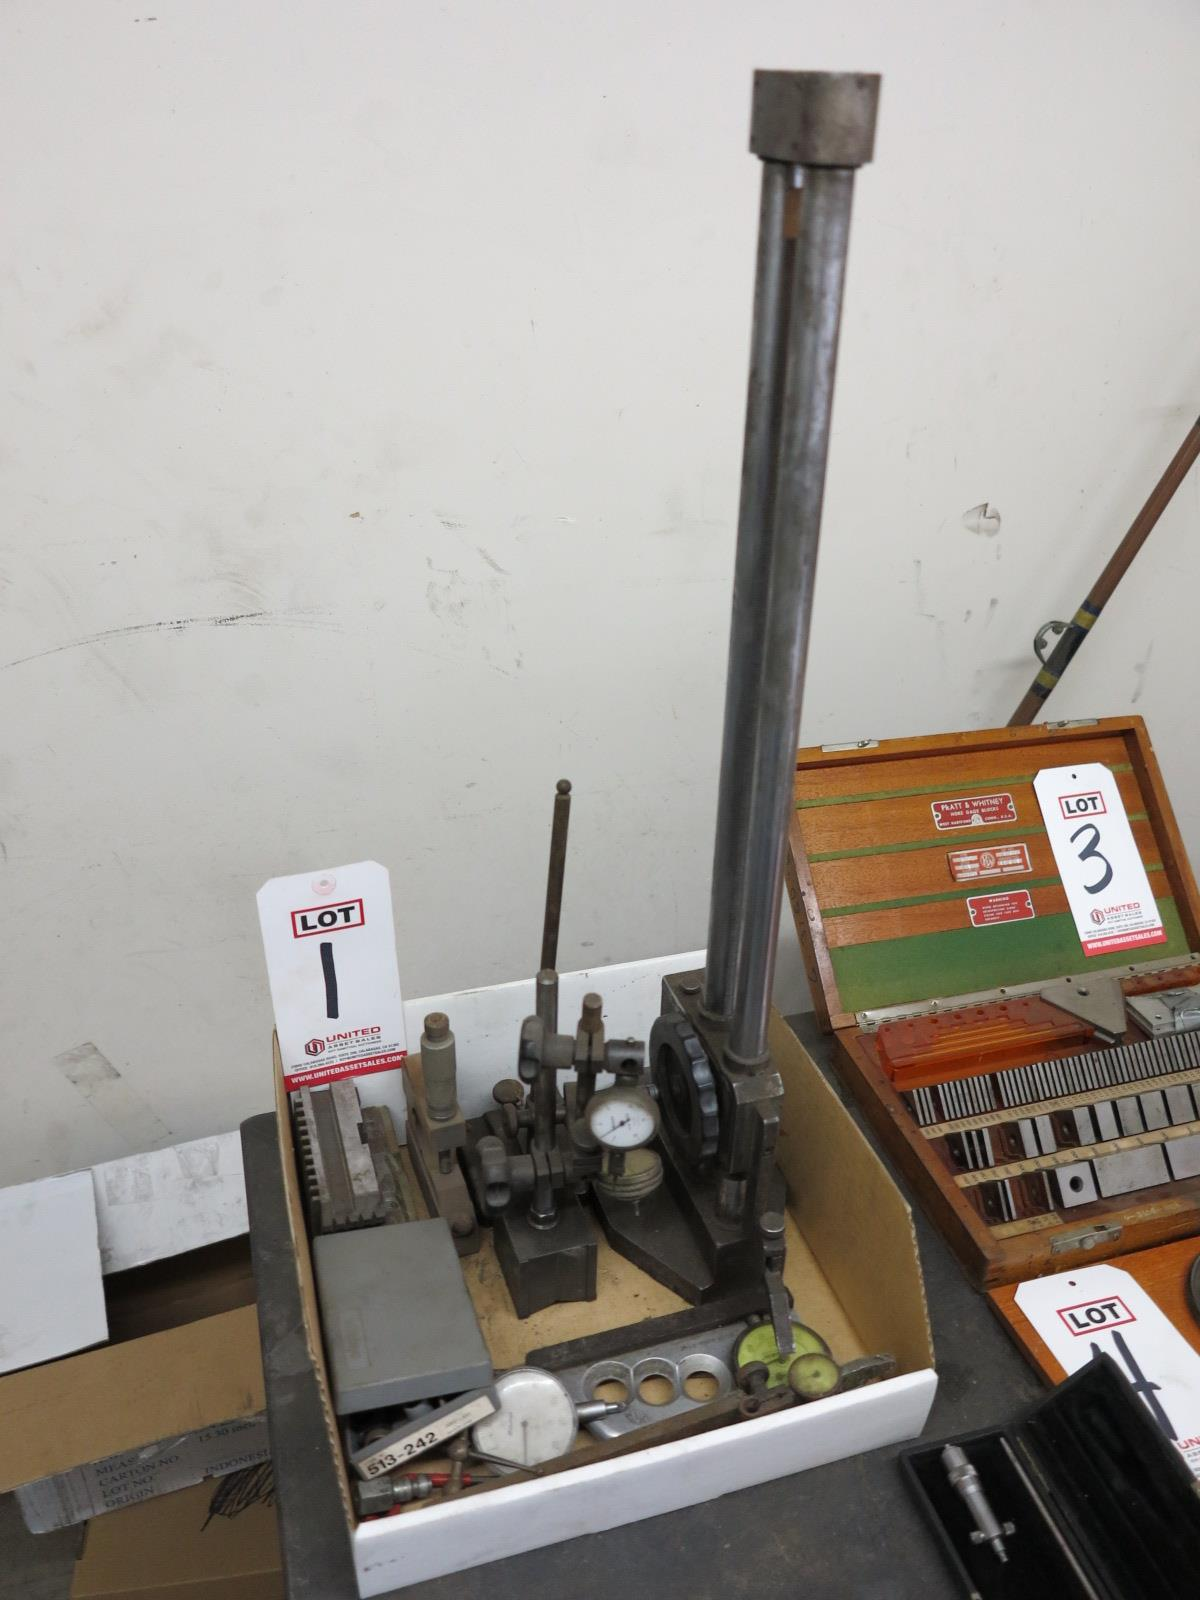 LOT - MISC INSPECTION ITEMS, TO INCLUDE: CHUCK JAWS, DIAL INDICATORS, ETC.